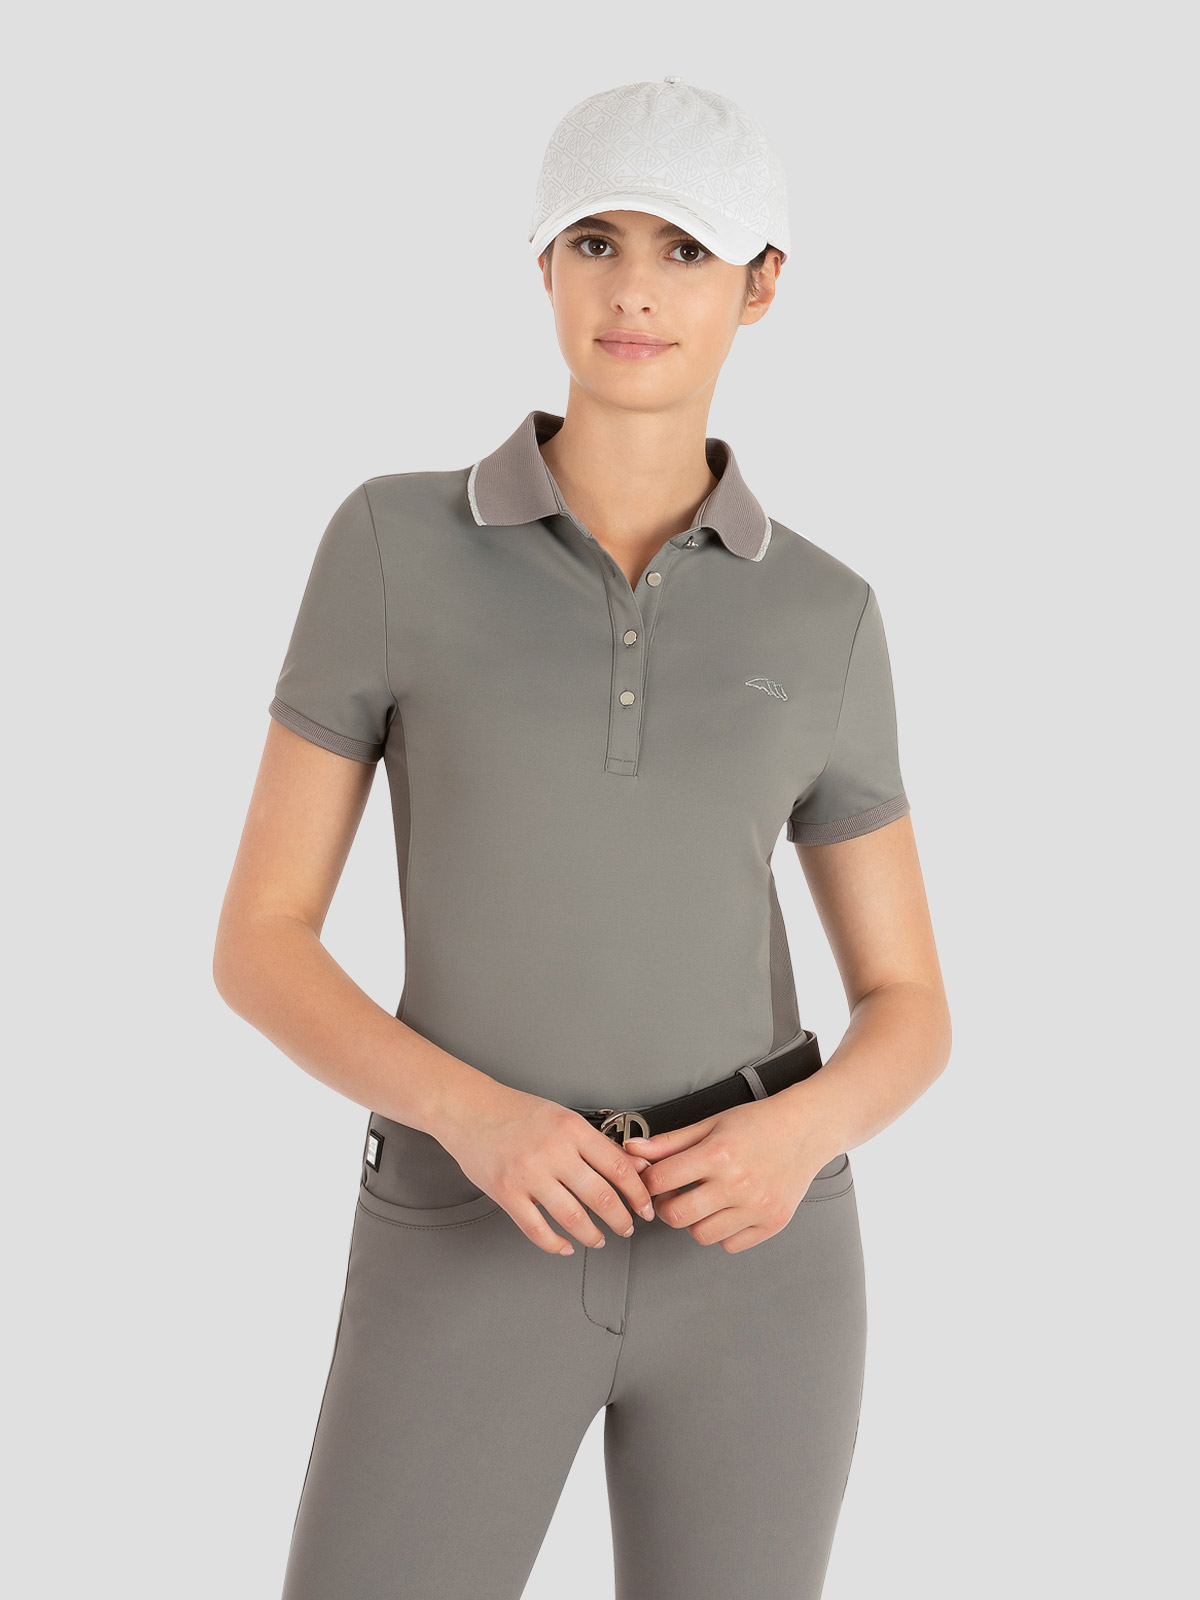 ELLAE WOMEN'S POLO SHIRT 1